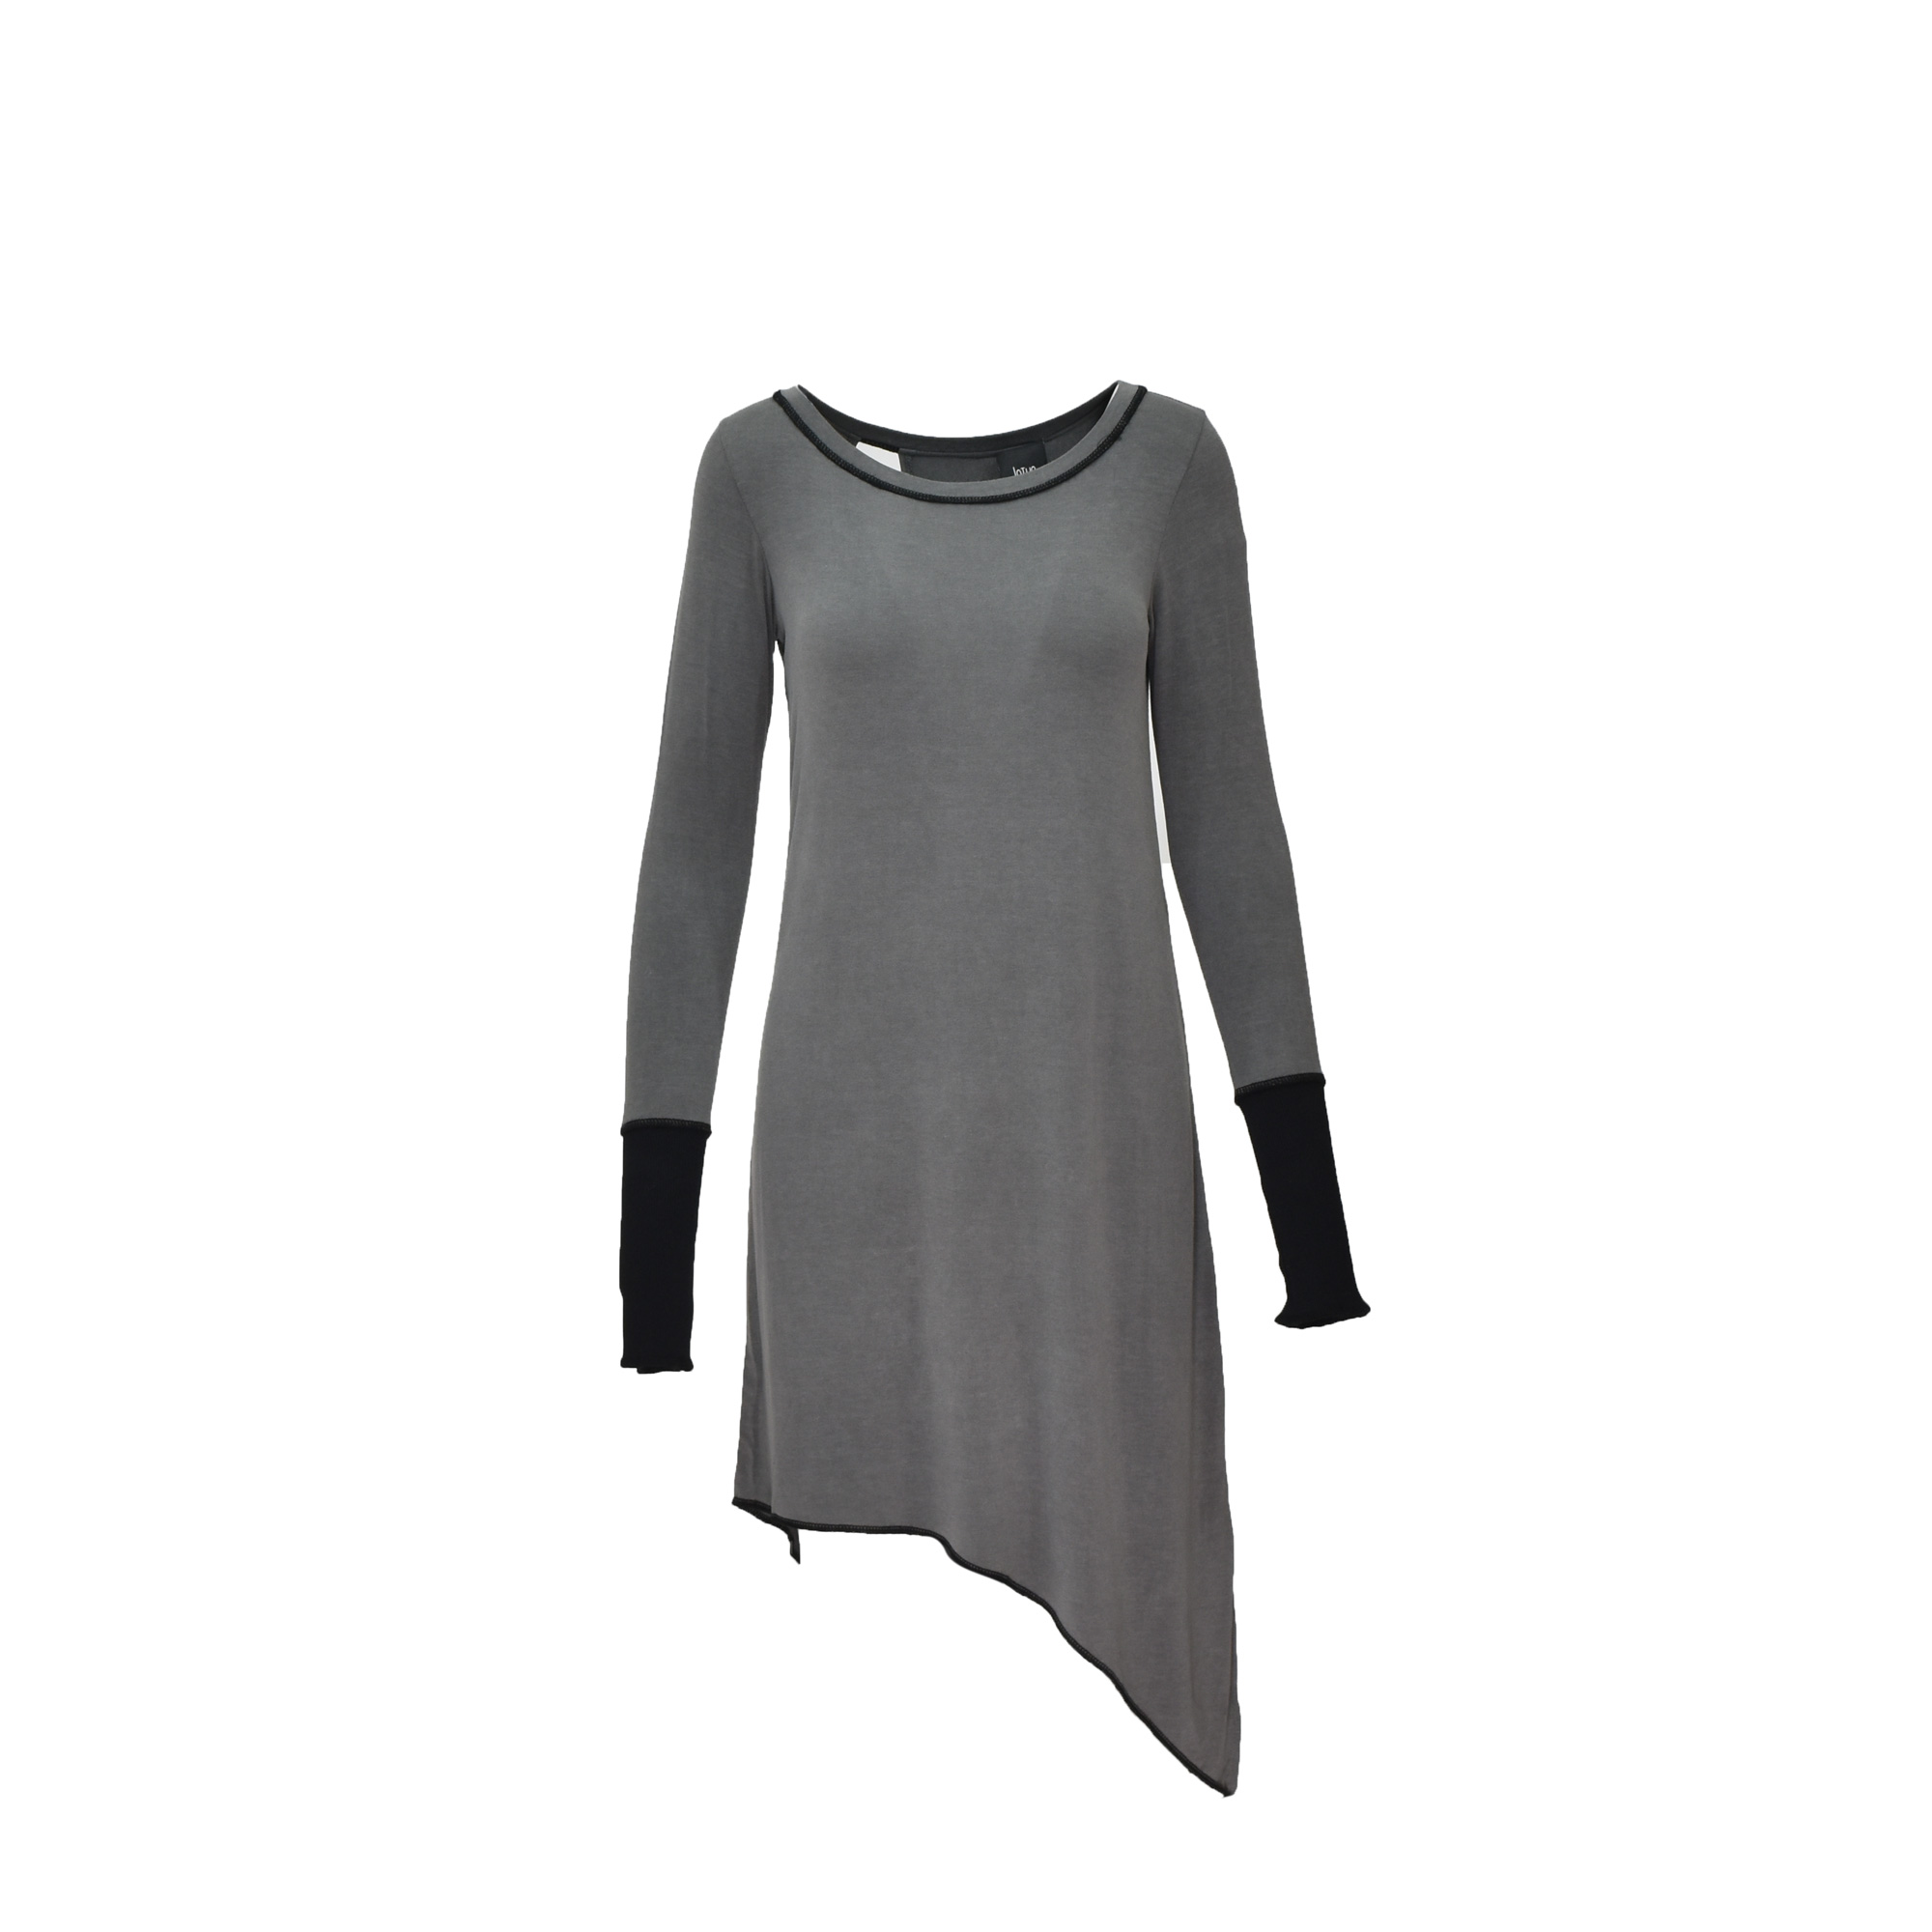 LOTUS EATERS DRESS - ANNET GREY